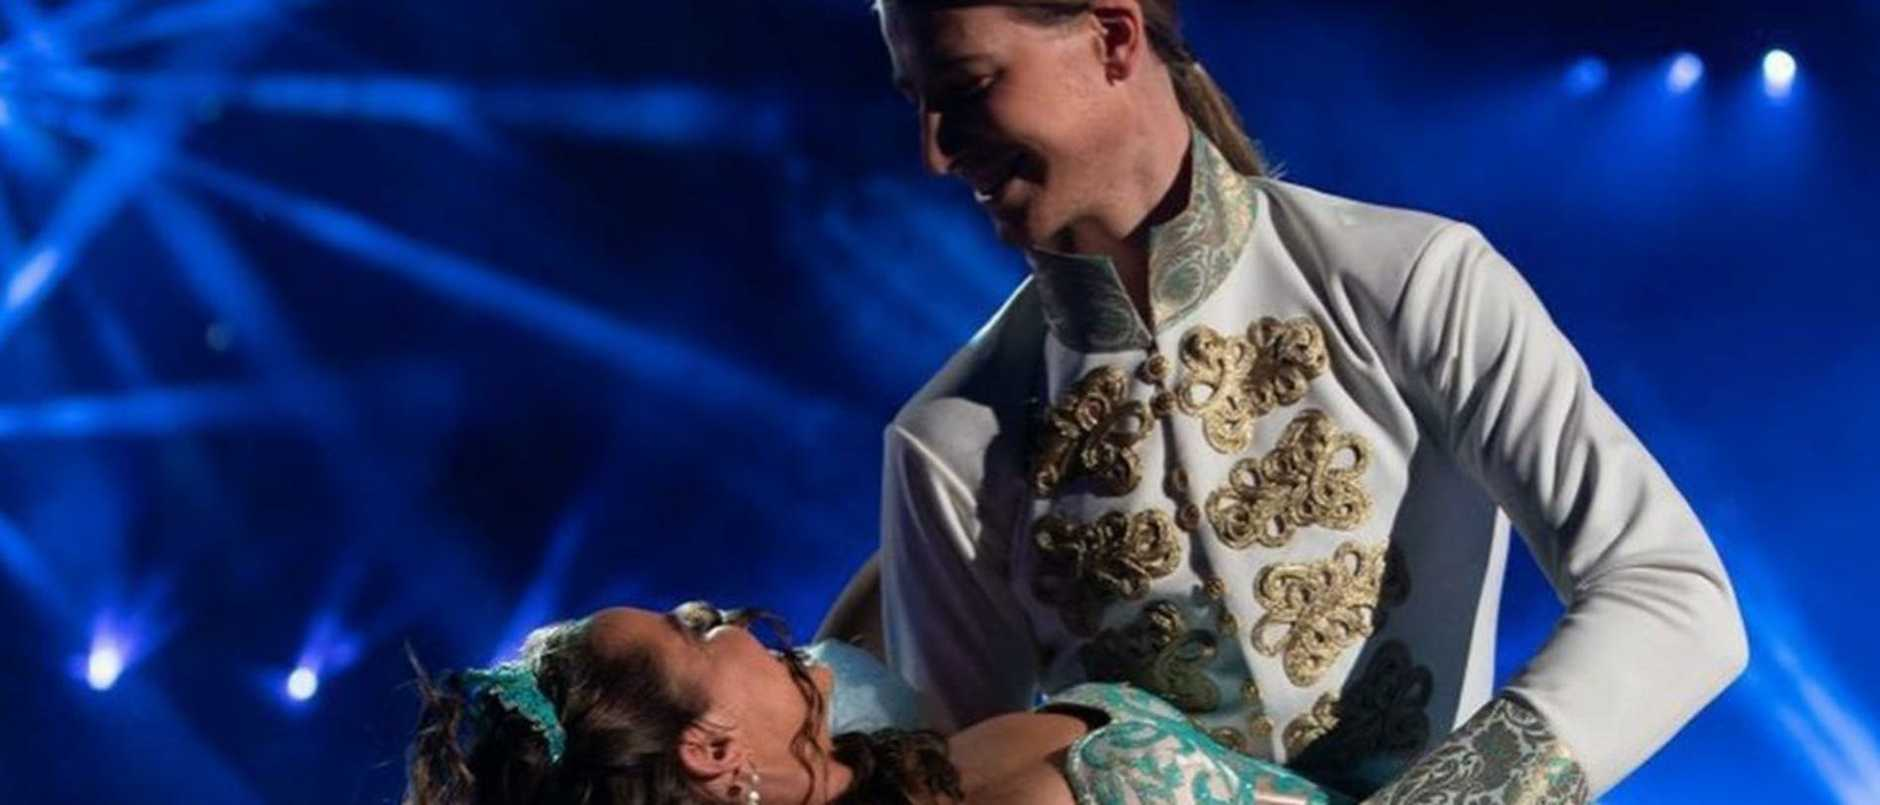 A Dancing with the Stars pair are set to go to new heights to keep dancing despite being placed in quarantine amid the coronavirus crisis.